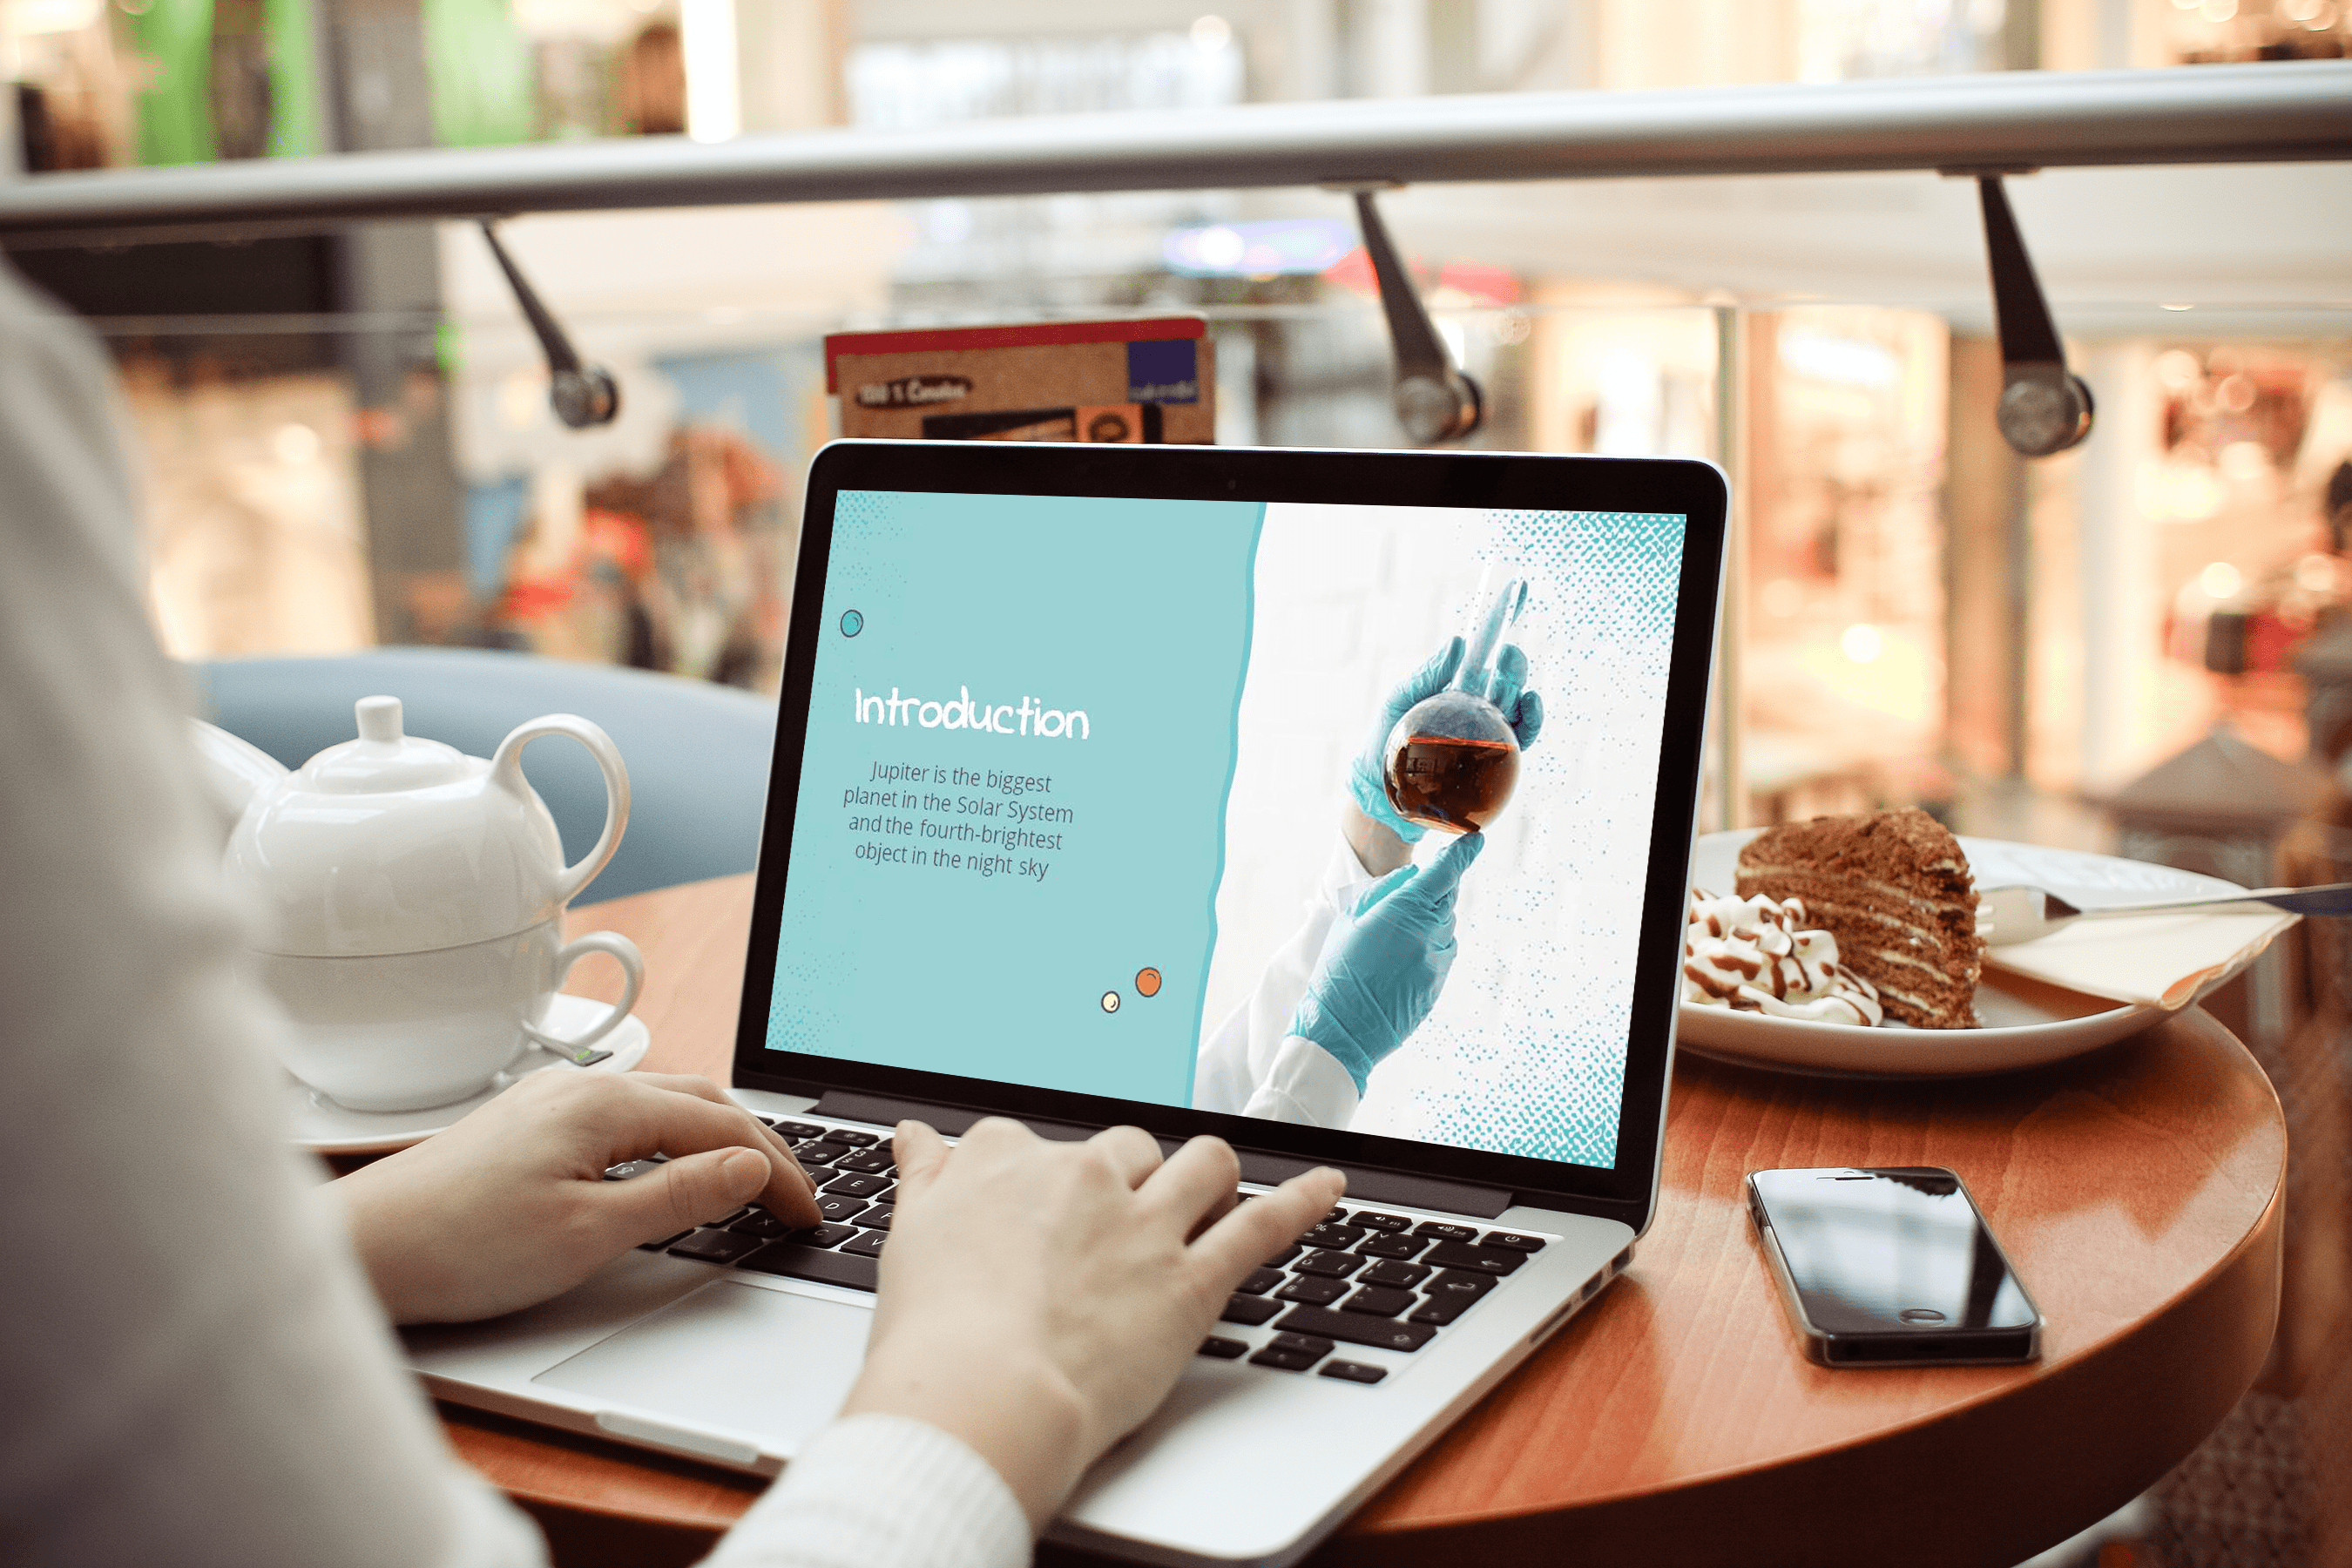 Free Science Education Center PowerPoint Template by MasterBundles notebook.